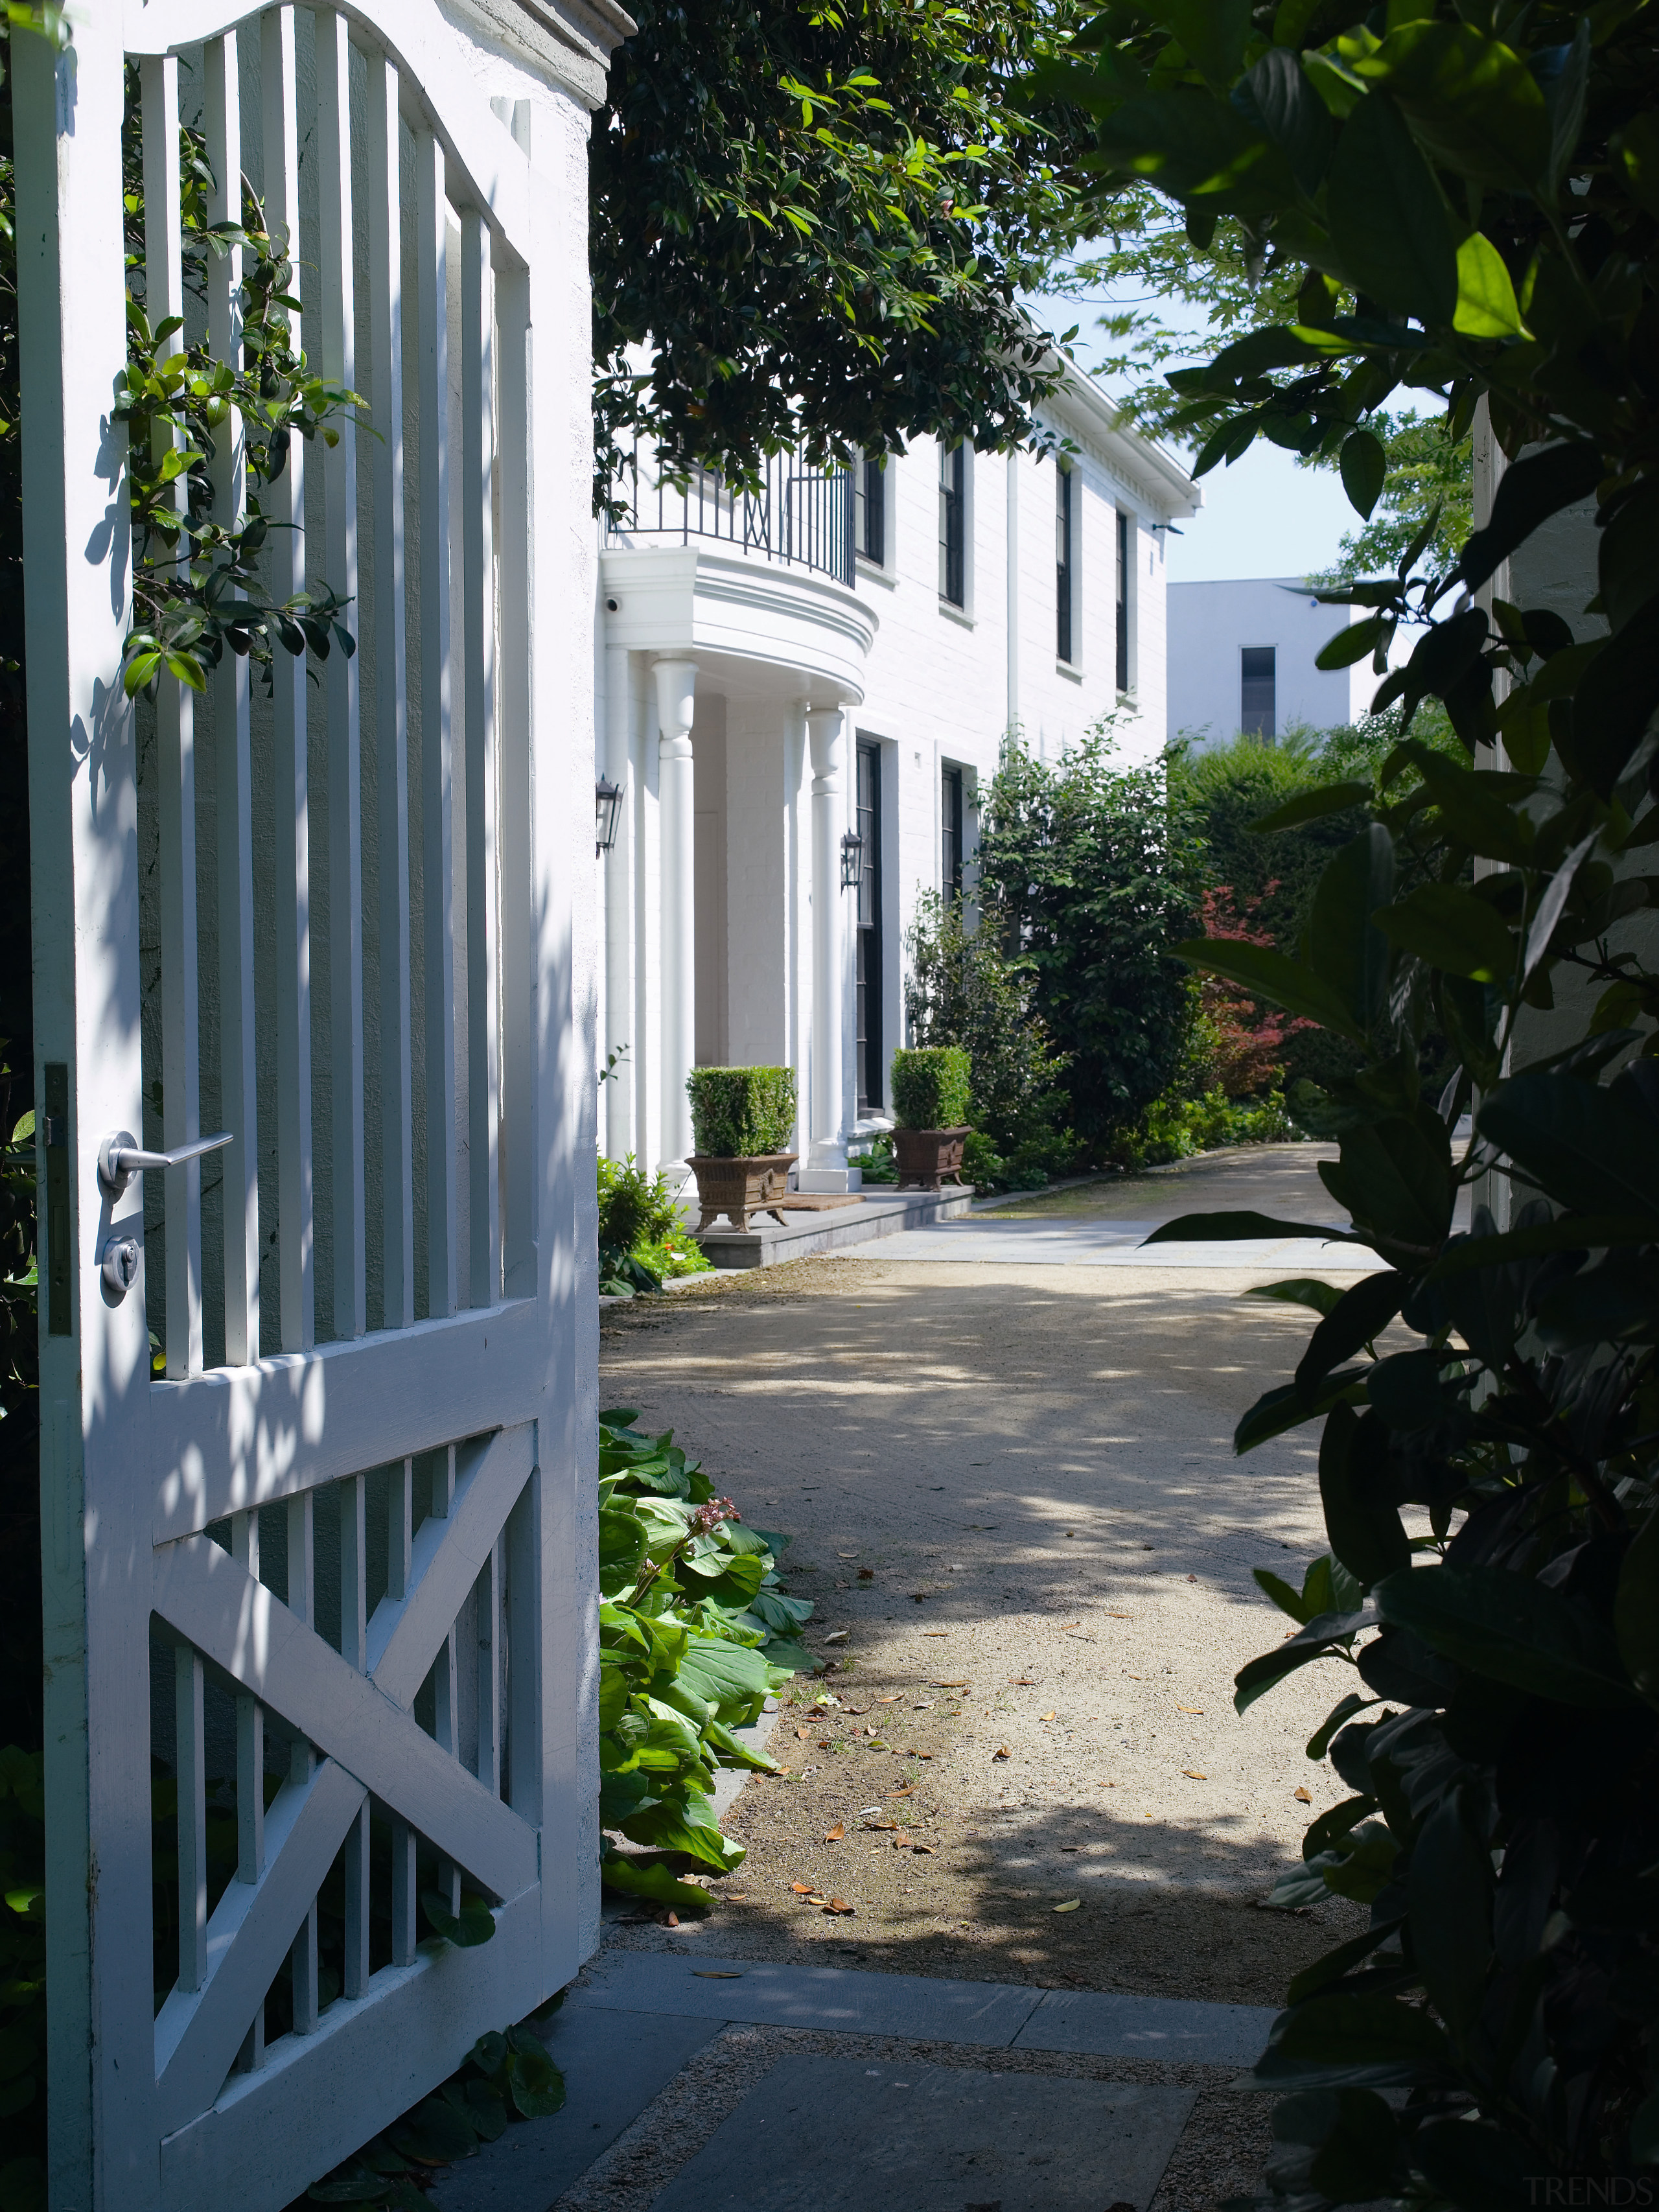 An exterior view of the house and its alley, architecture, courtyard, estate, facade, garden, gate, home, house, neighbourhood, outdoor structure, property, real estate, residential area, tree, walkway, window, black